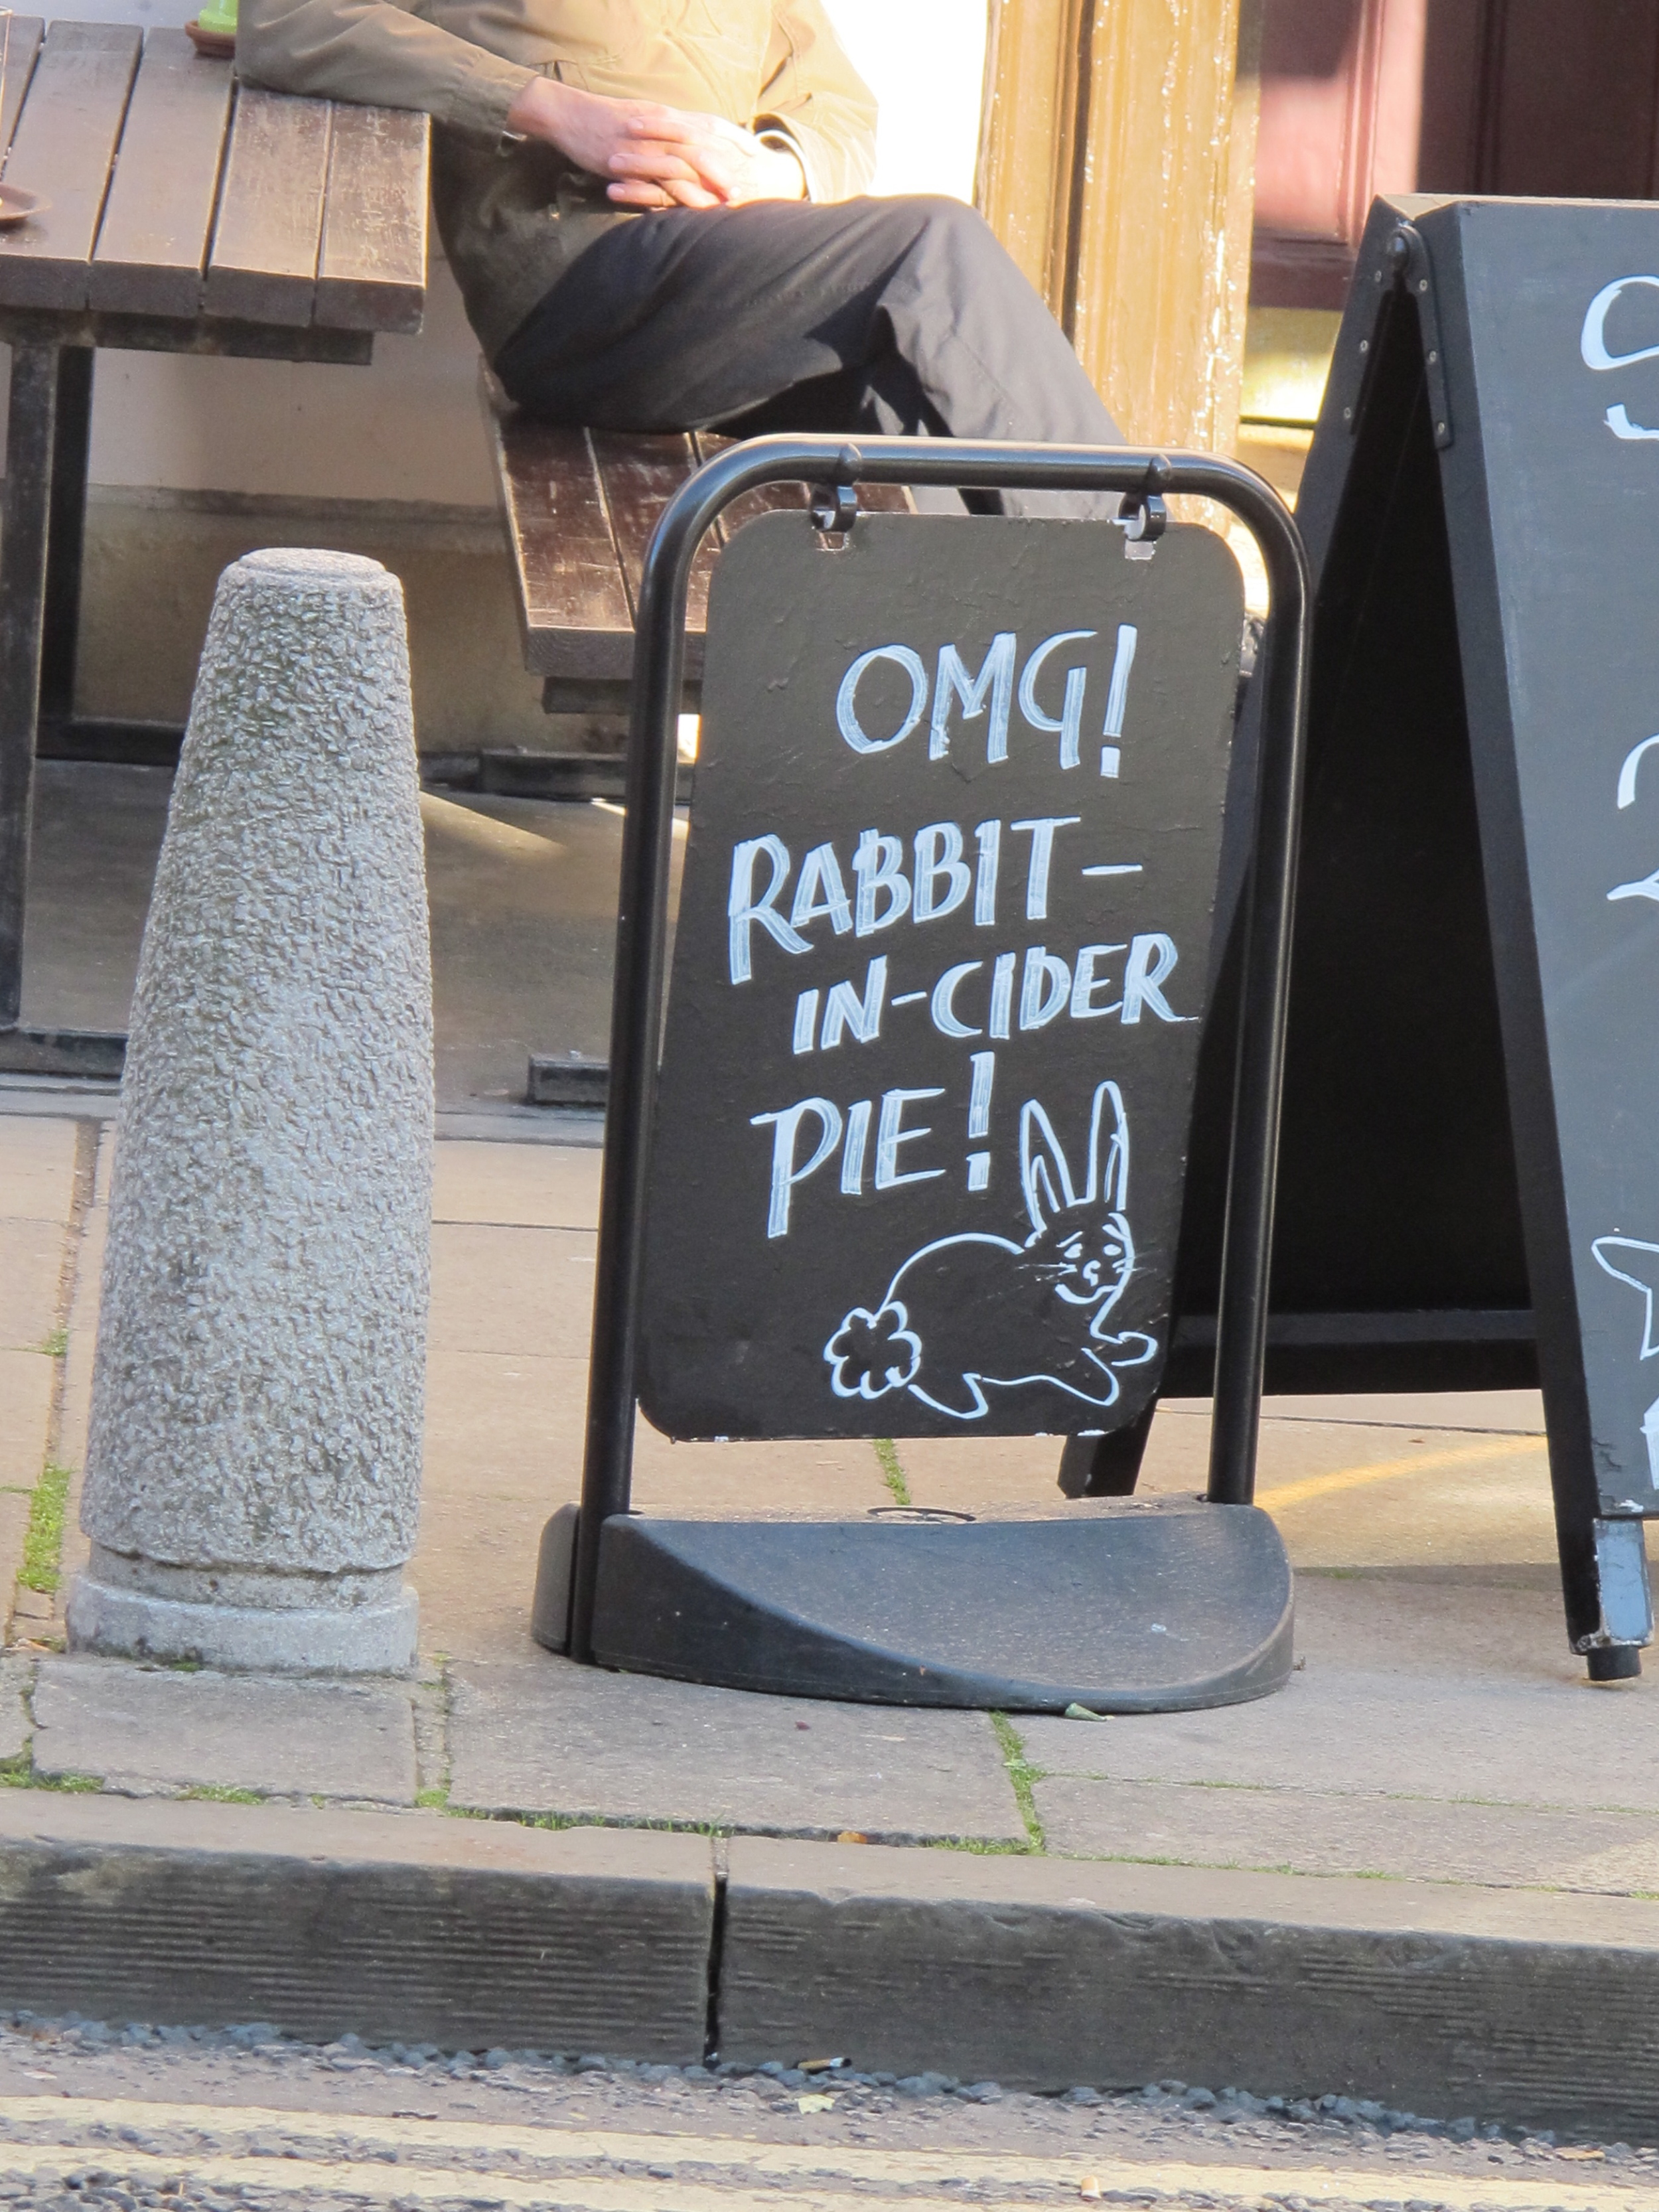 OMG indeed! This Oxford lunch special would have been jarring fare for the March Hare at Alice's tea party.